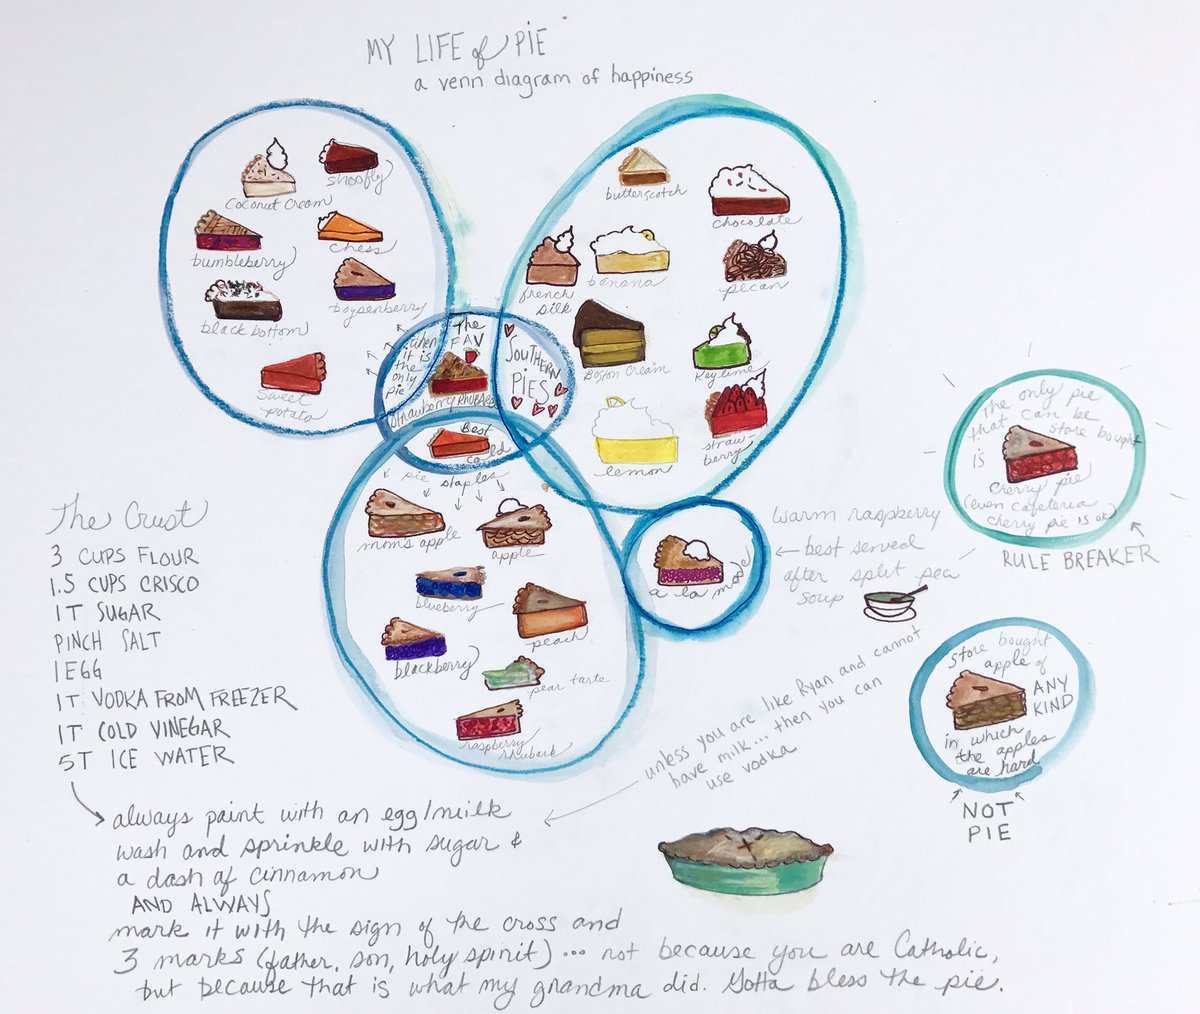 Kellyinrepeat on twitter my life of pie a venn diagram of kellyinrepeat on twitter my life of pie a venn diagram of happiness pies pie illustration diagram foodie venndiagram ccuart Images